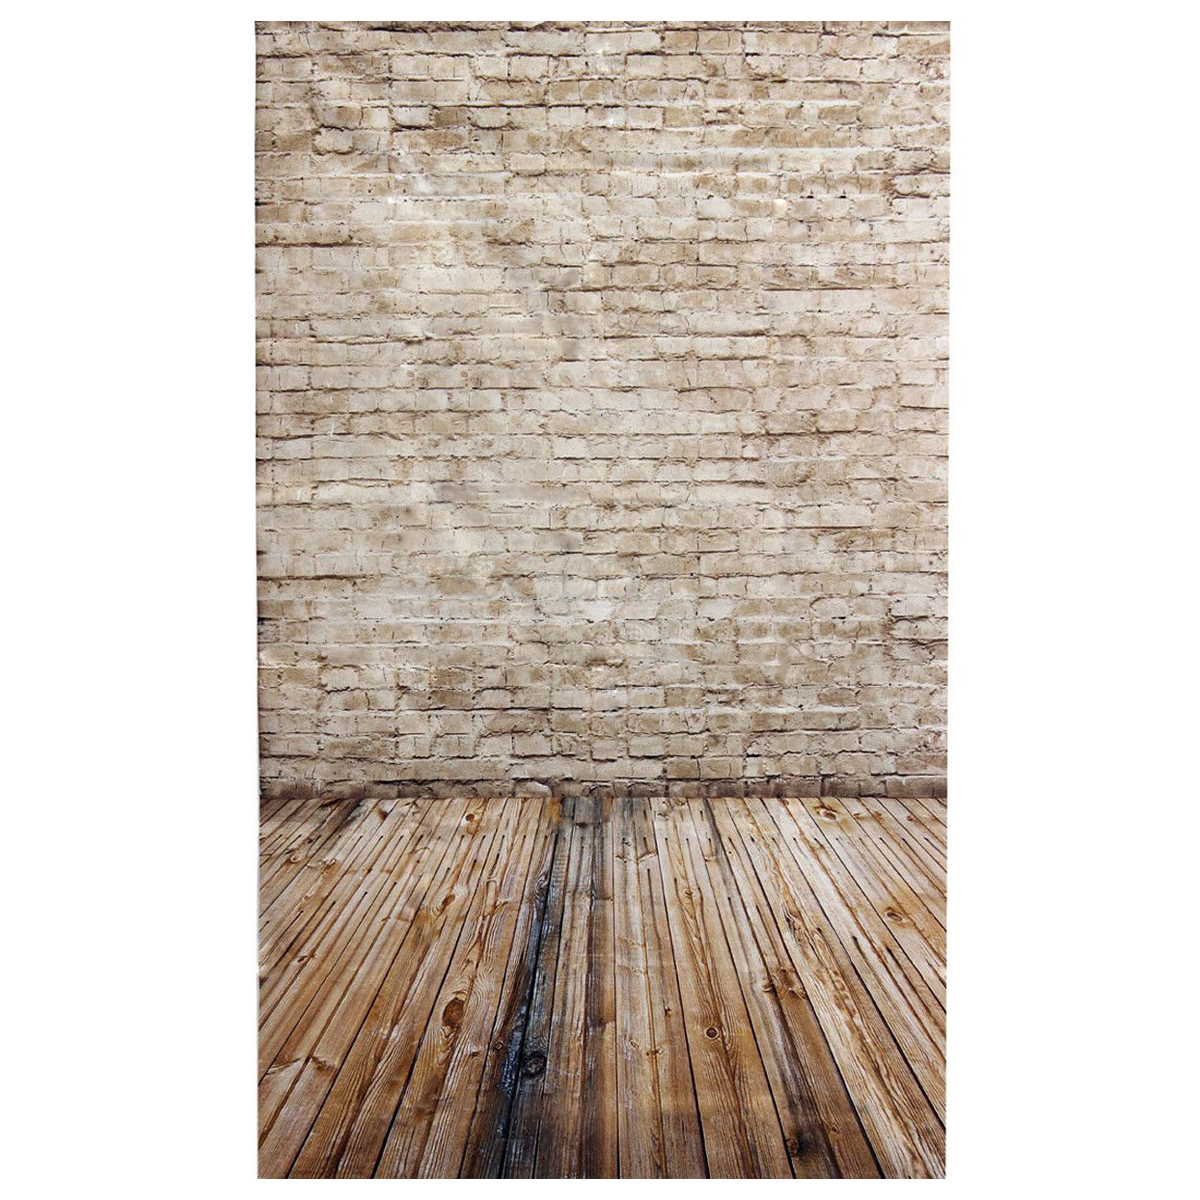 3x5FT Brick Wall Photography Backdrop Photo Wooden Floor Studio Background Props Light Grey shengyongbao 300cm 200cm vinyl custom photography backdrops brick wall theme photo studio props photography background brw 12